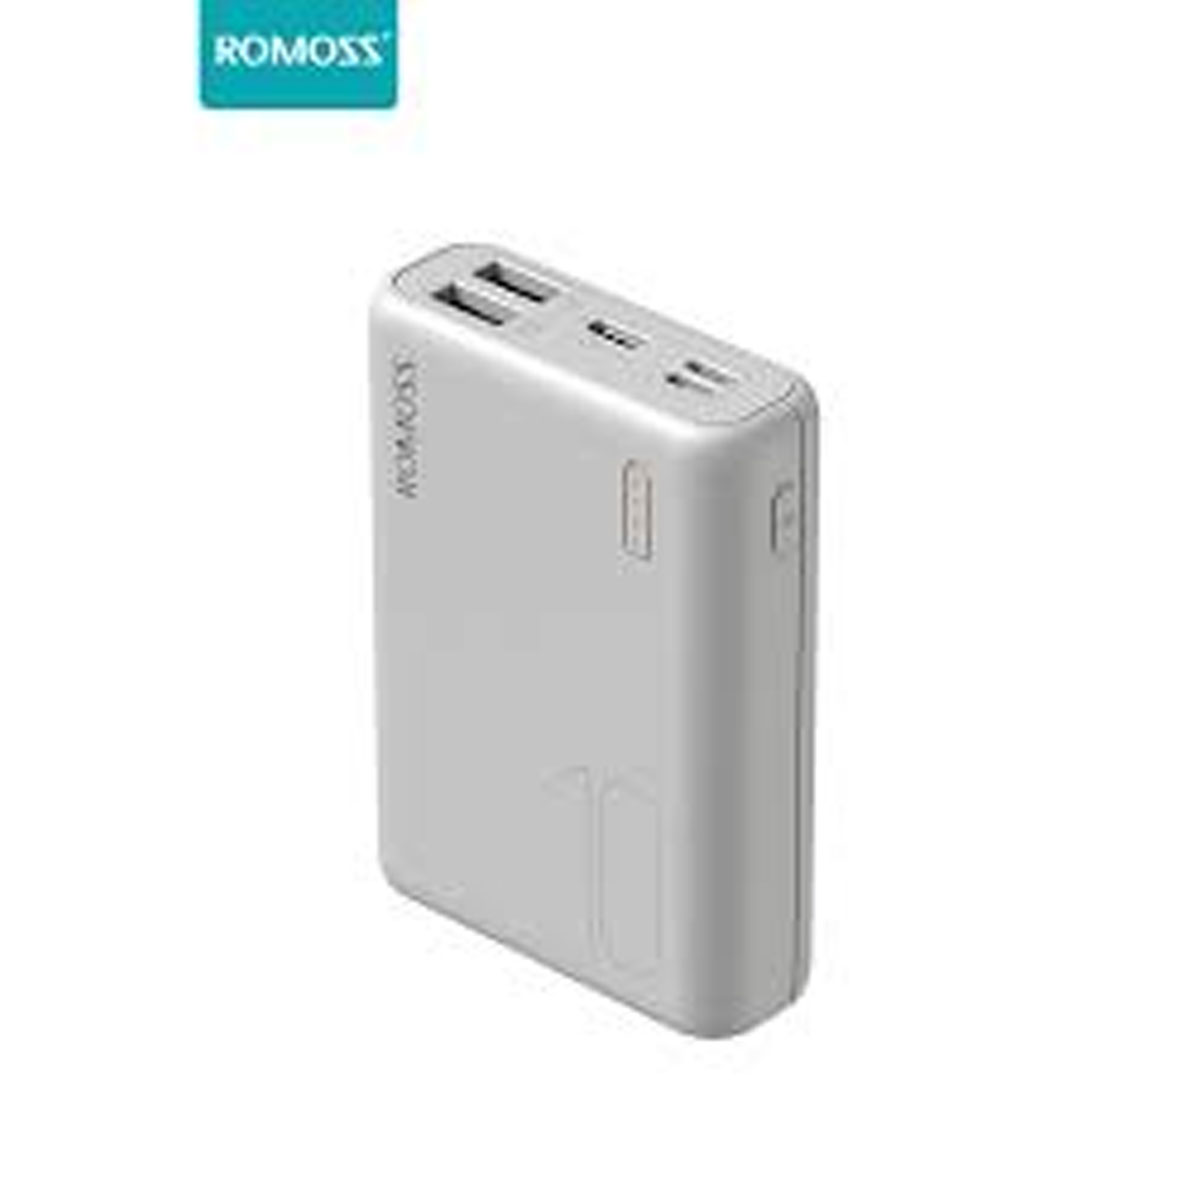 Romoss Pocket Size Simple 10 10000mah Power Bank Gallery Image 2